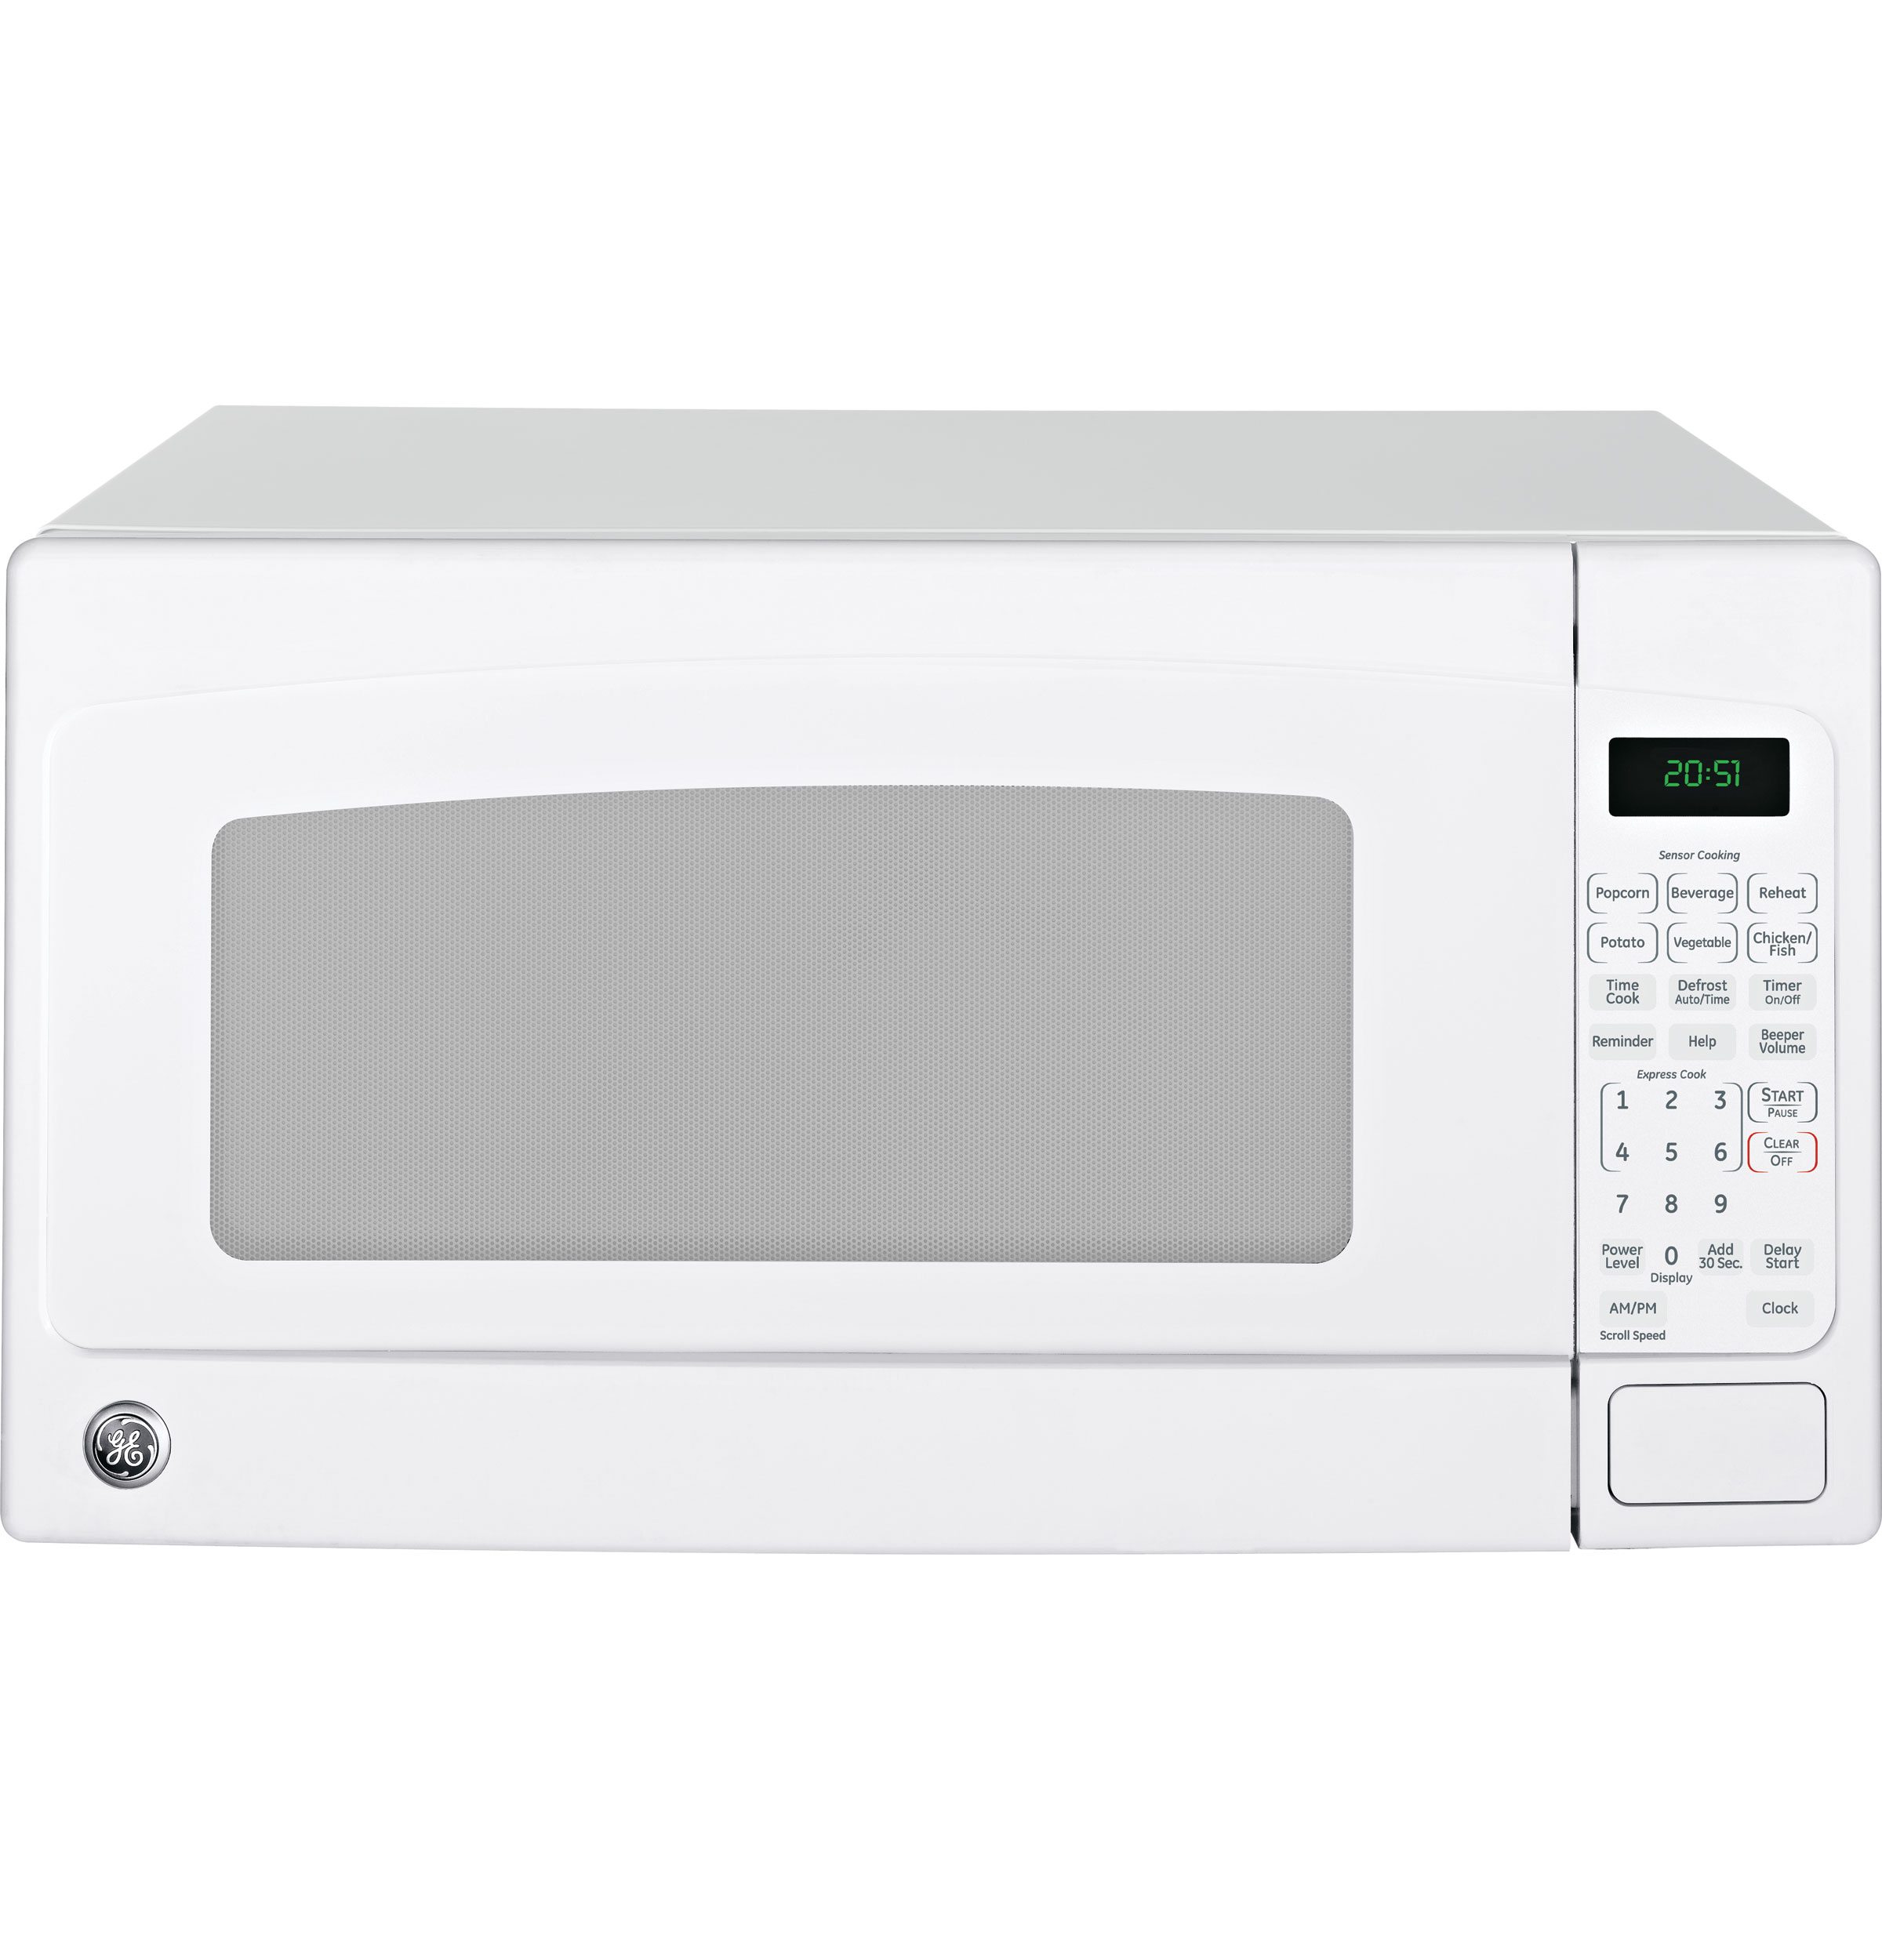 Countertop Dishwasher Ge : ... Ft. Capacity Countertop Microwave Oven JES2051DNWW GE Appliances